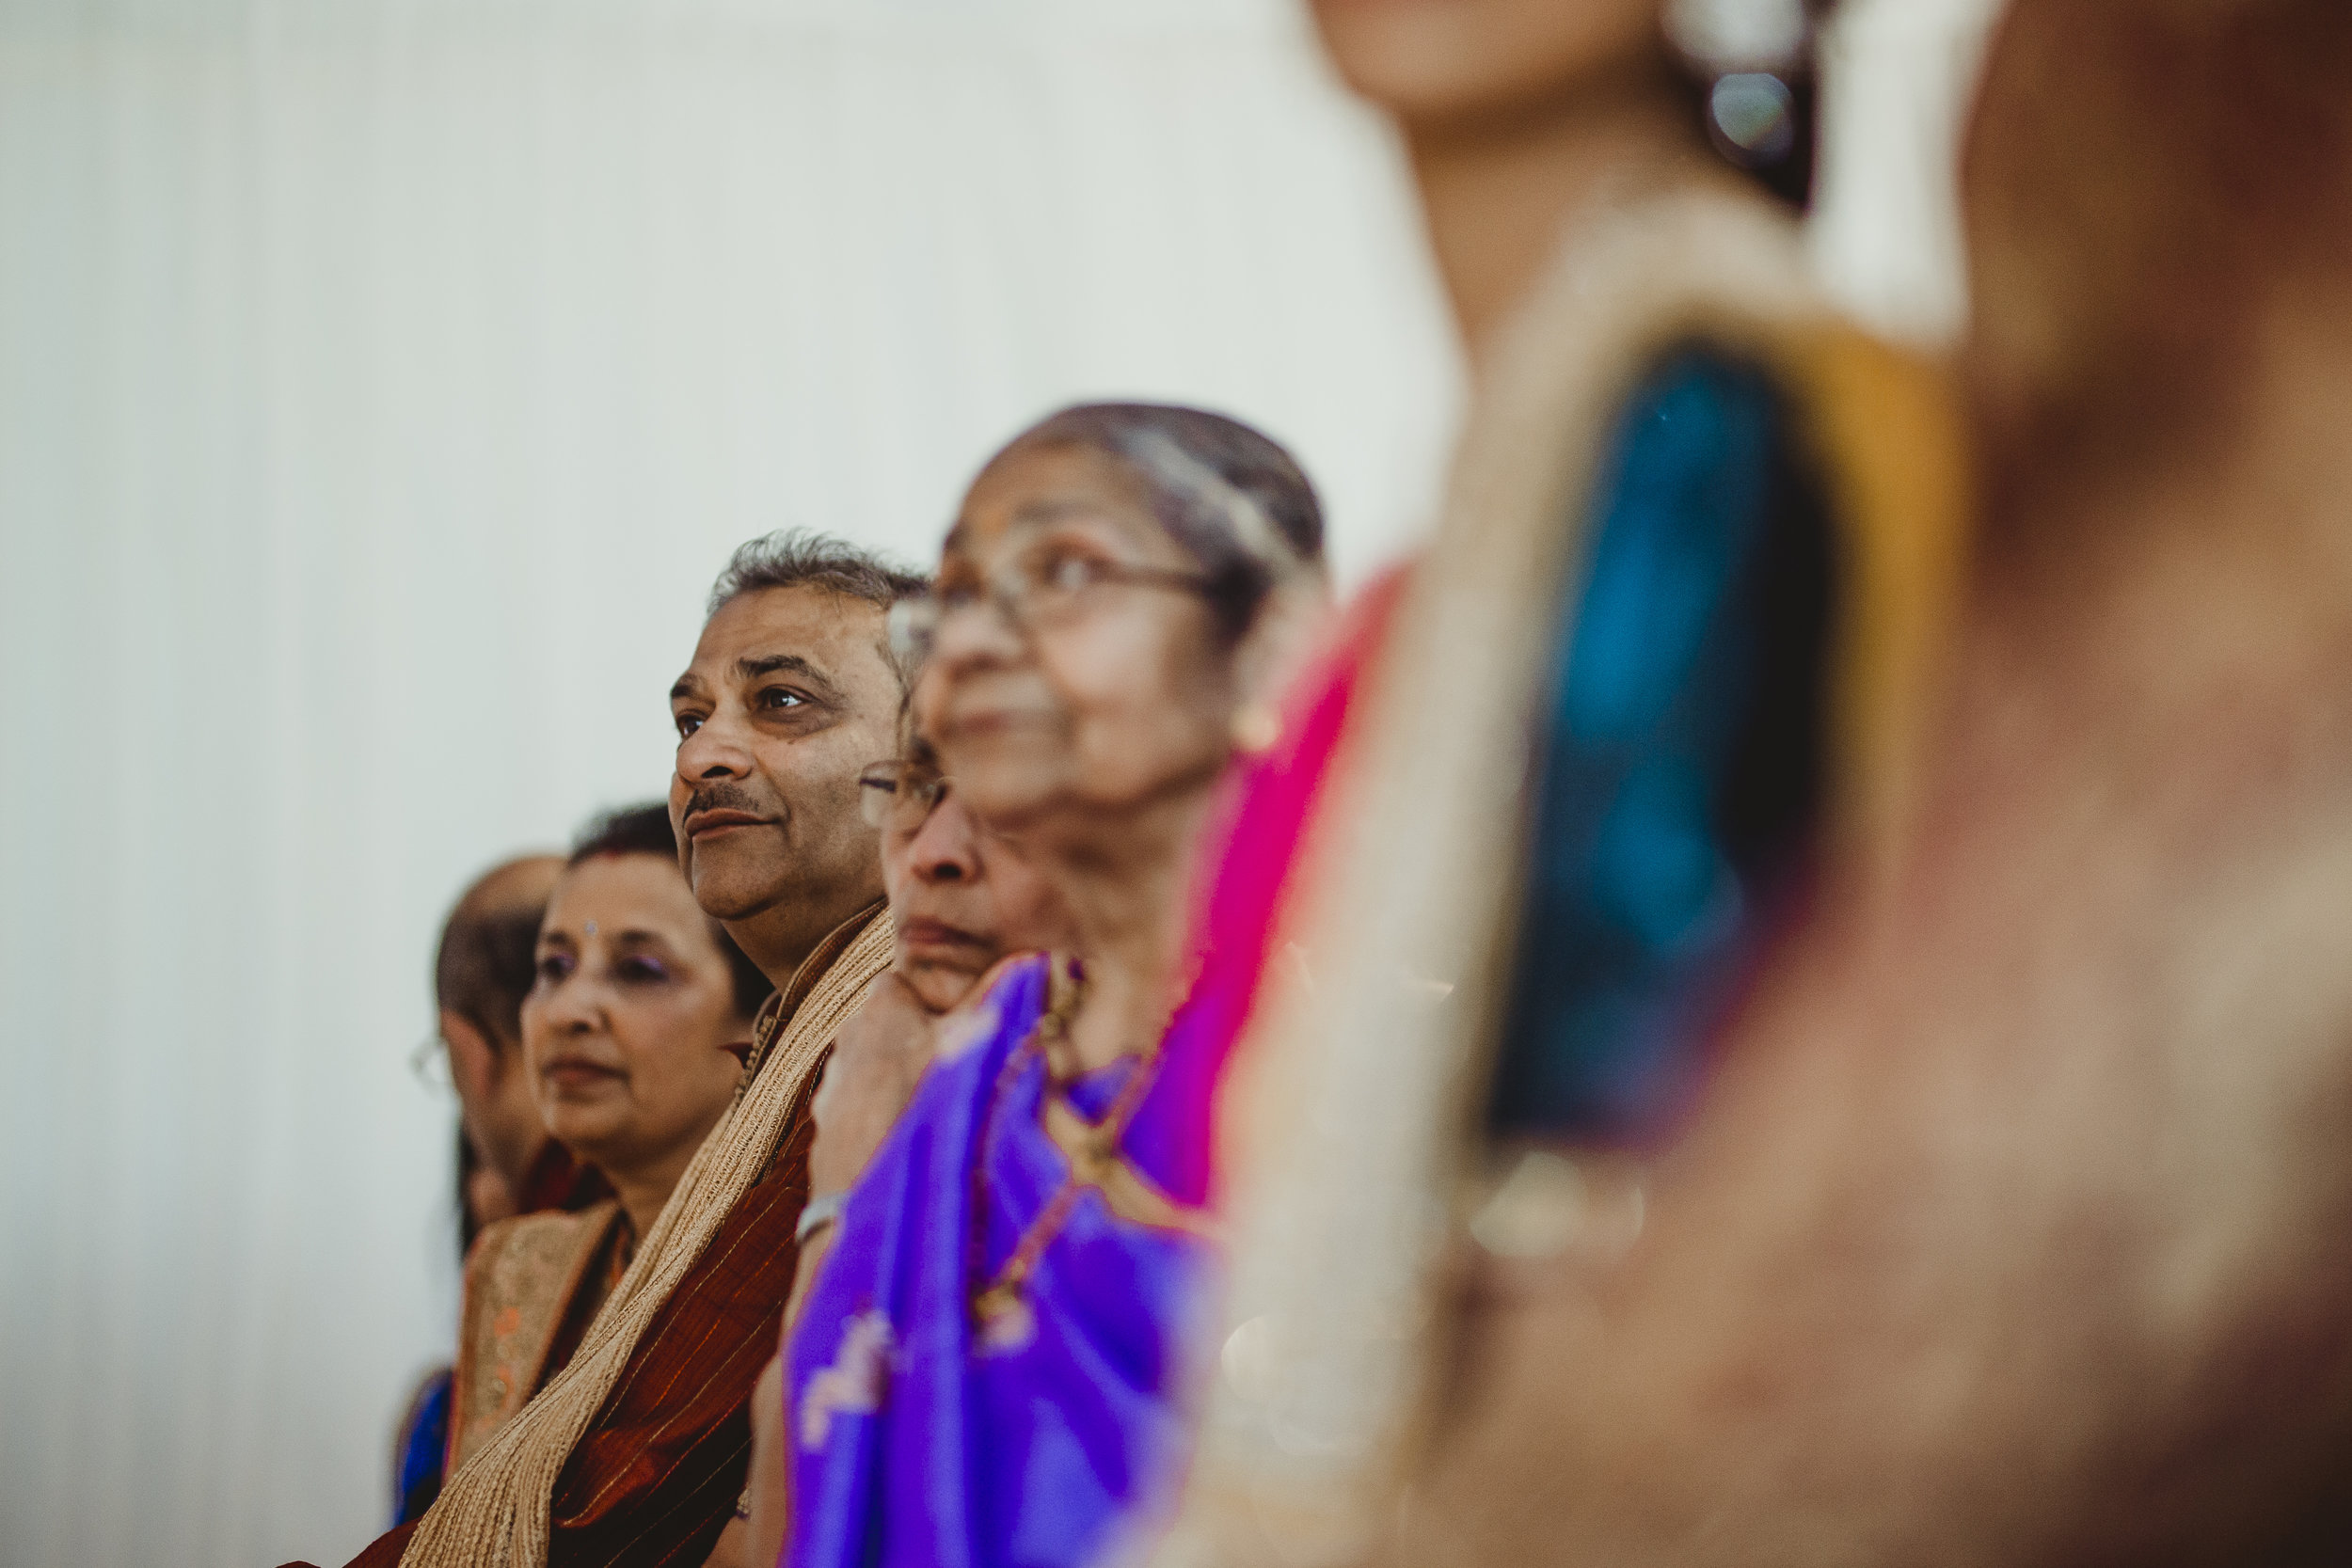 N&J_MILTON_KEYNES_WEDDING_LONDON_PHOTOGRAPHER_ASIAN_WEDDING-592.JPG